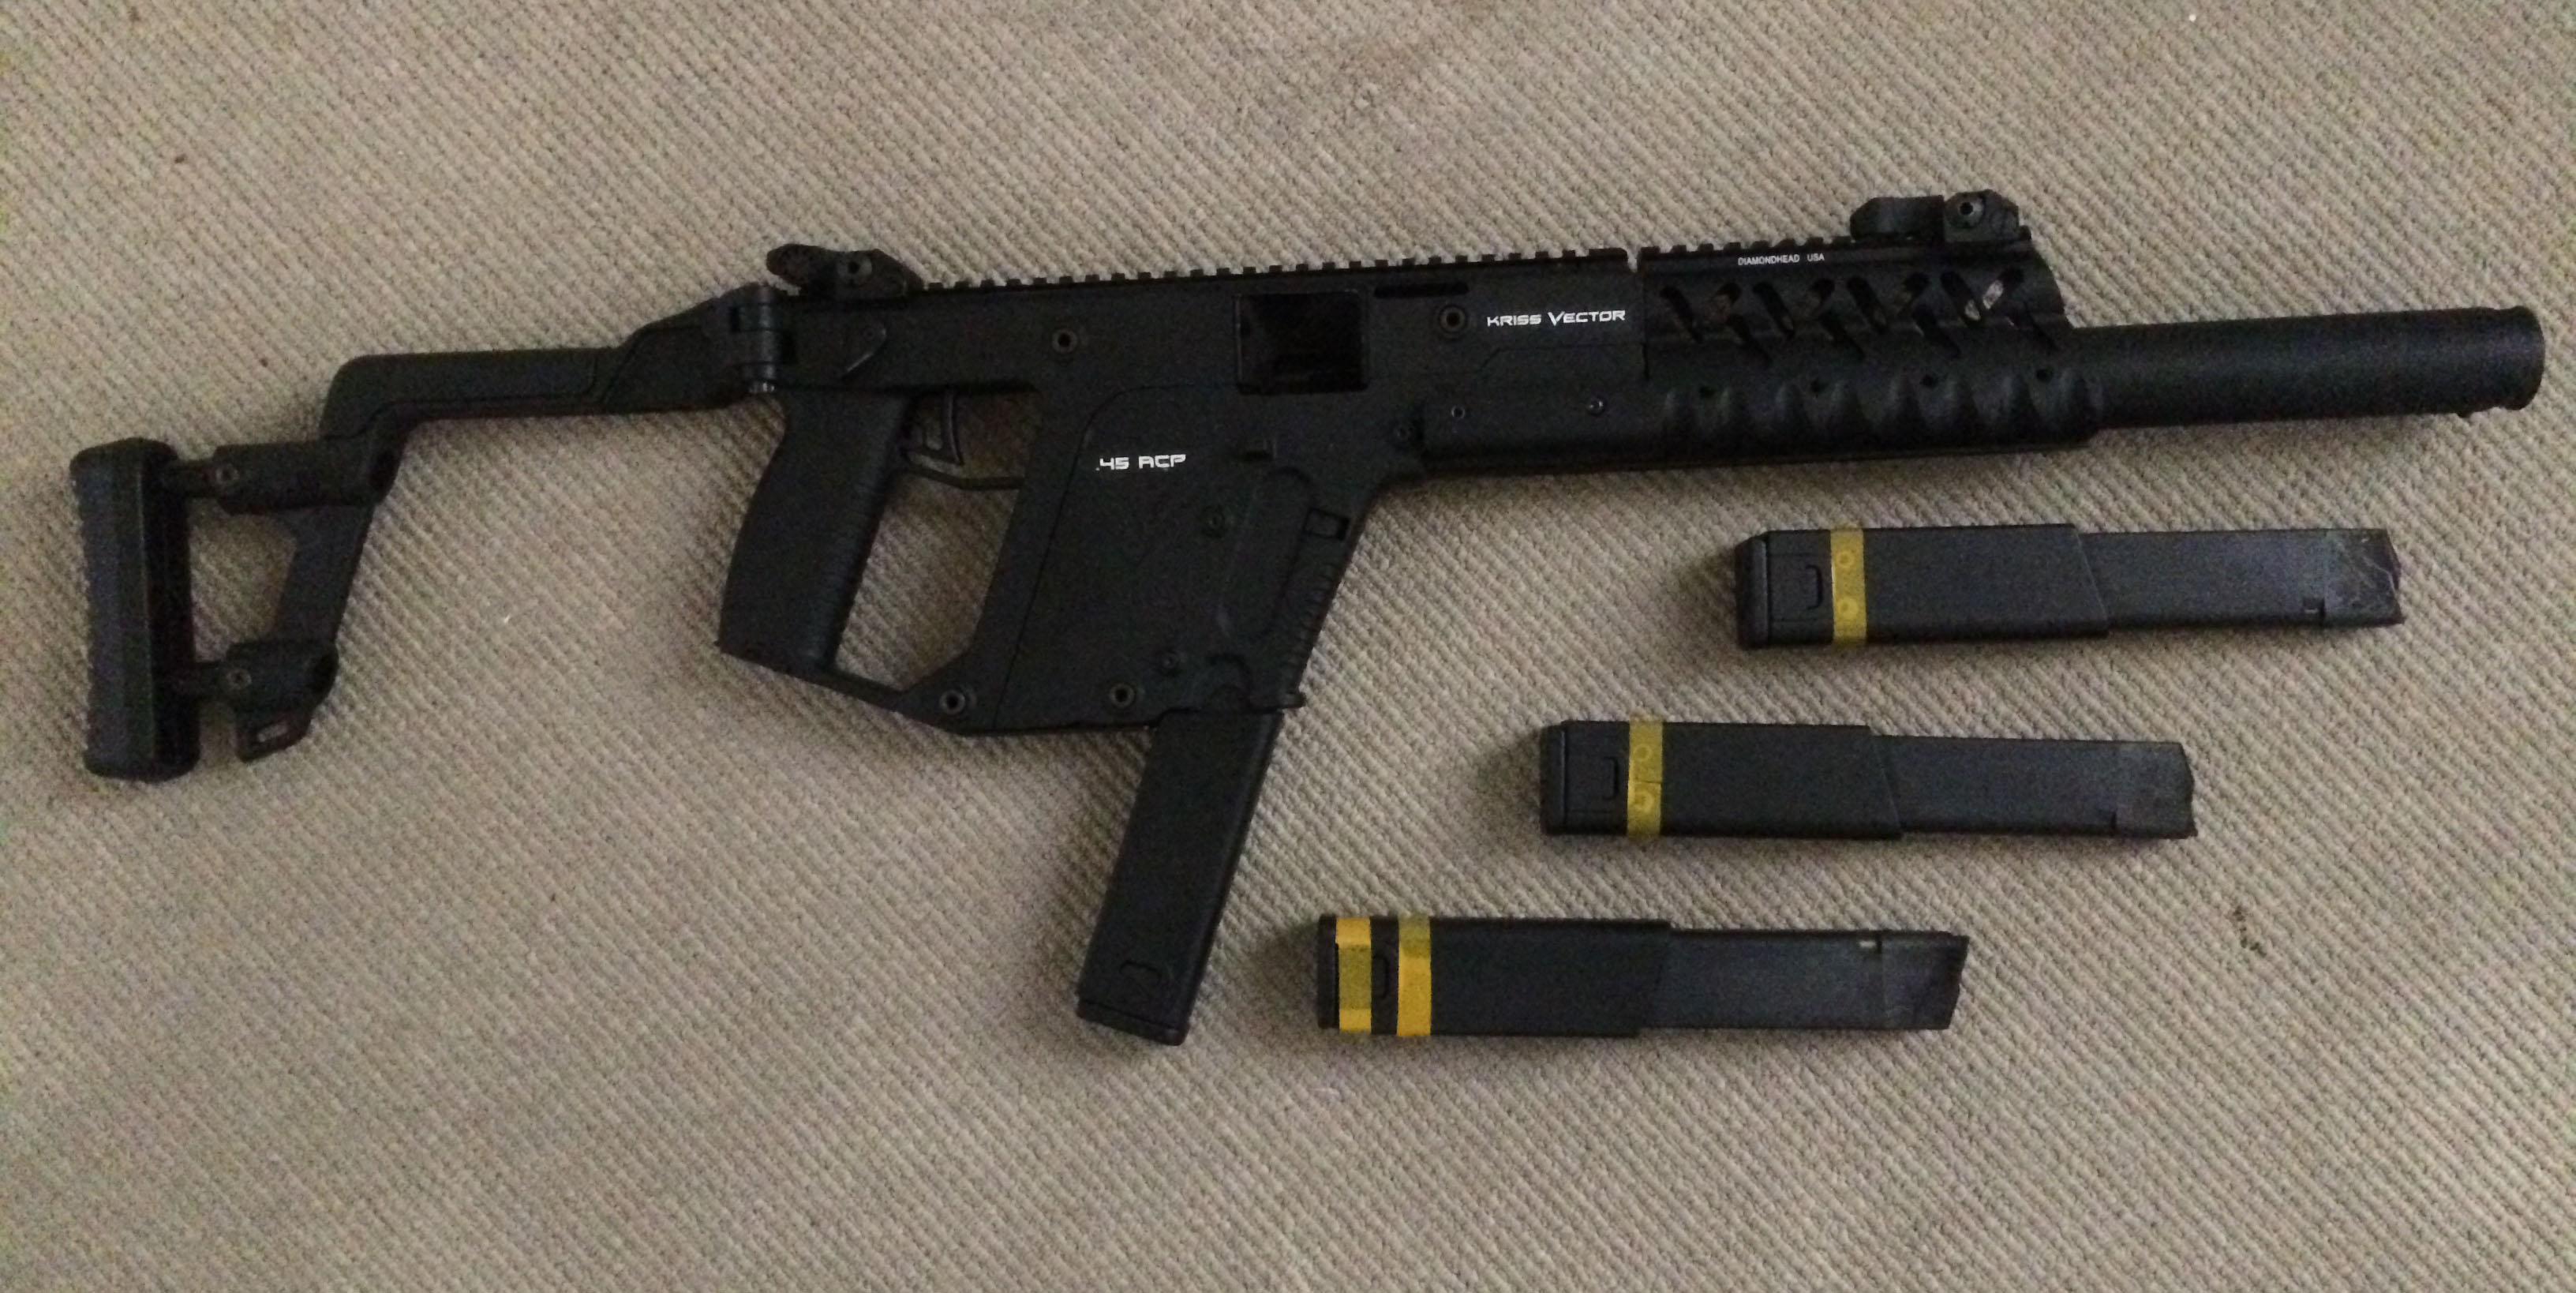 Kriss Vector with Diamond Head handguard